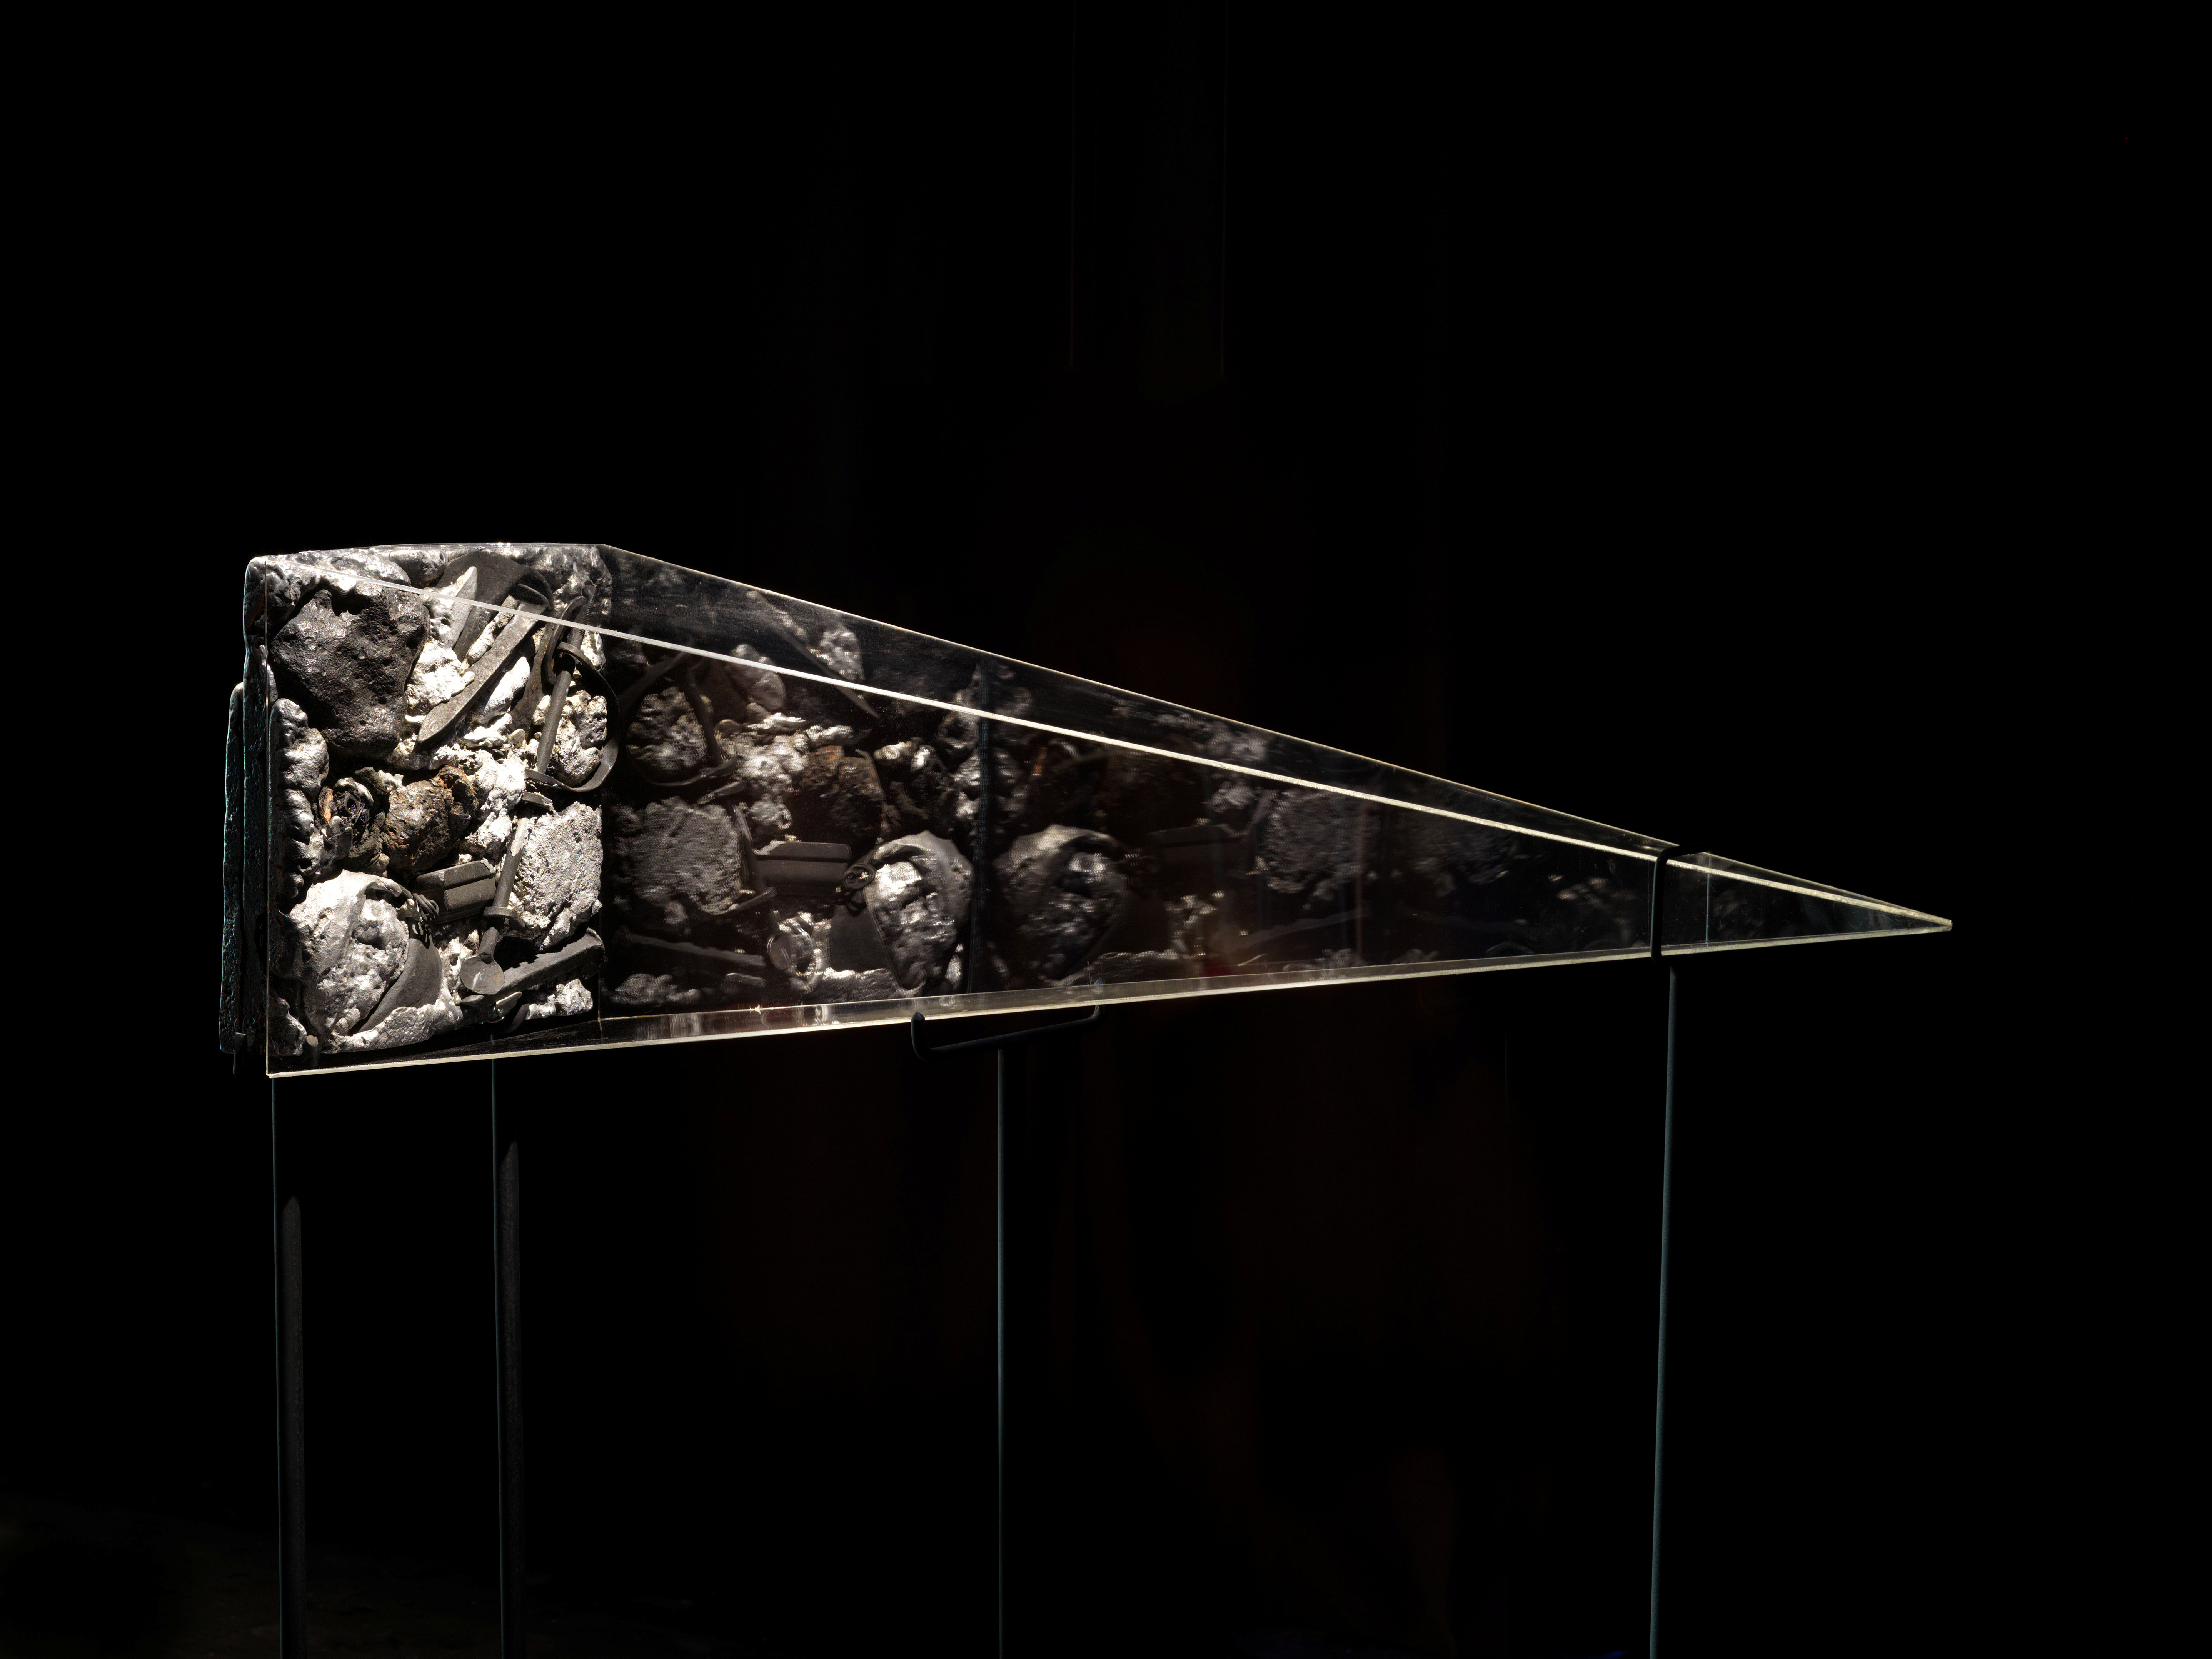 A pyramid vitrine lays on its side shrouded in darkness. Inside the vitrine is an illuminated collage of railroad nails, shackles, and various metals.